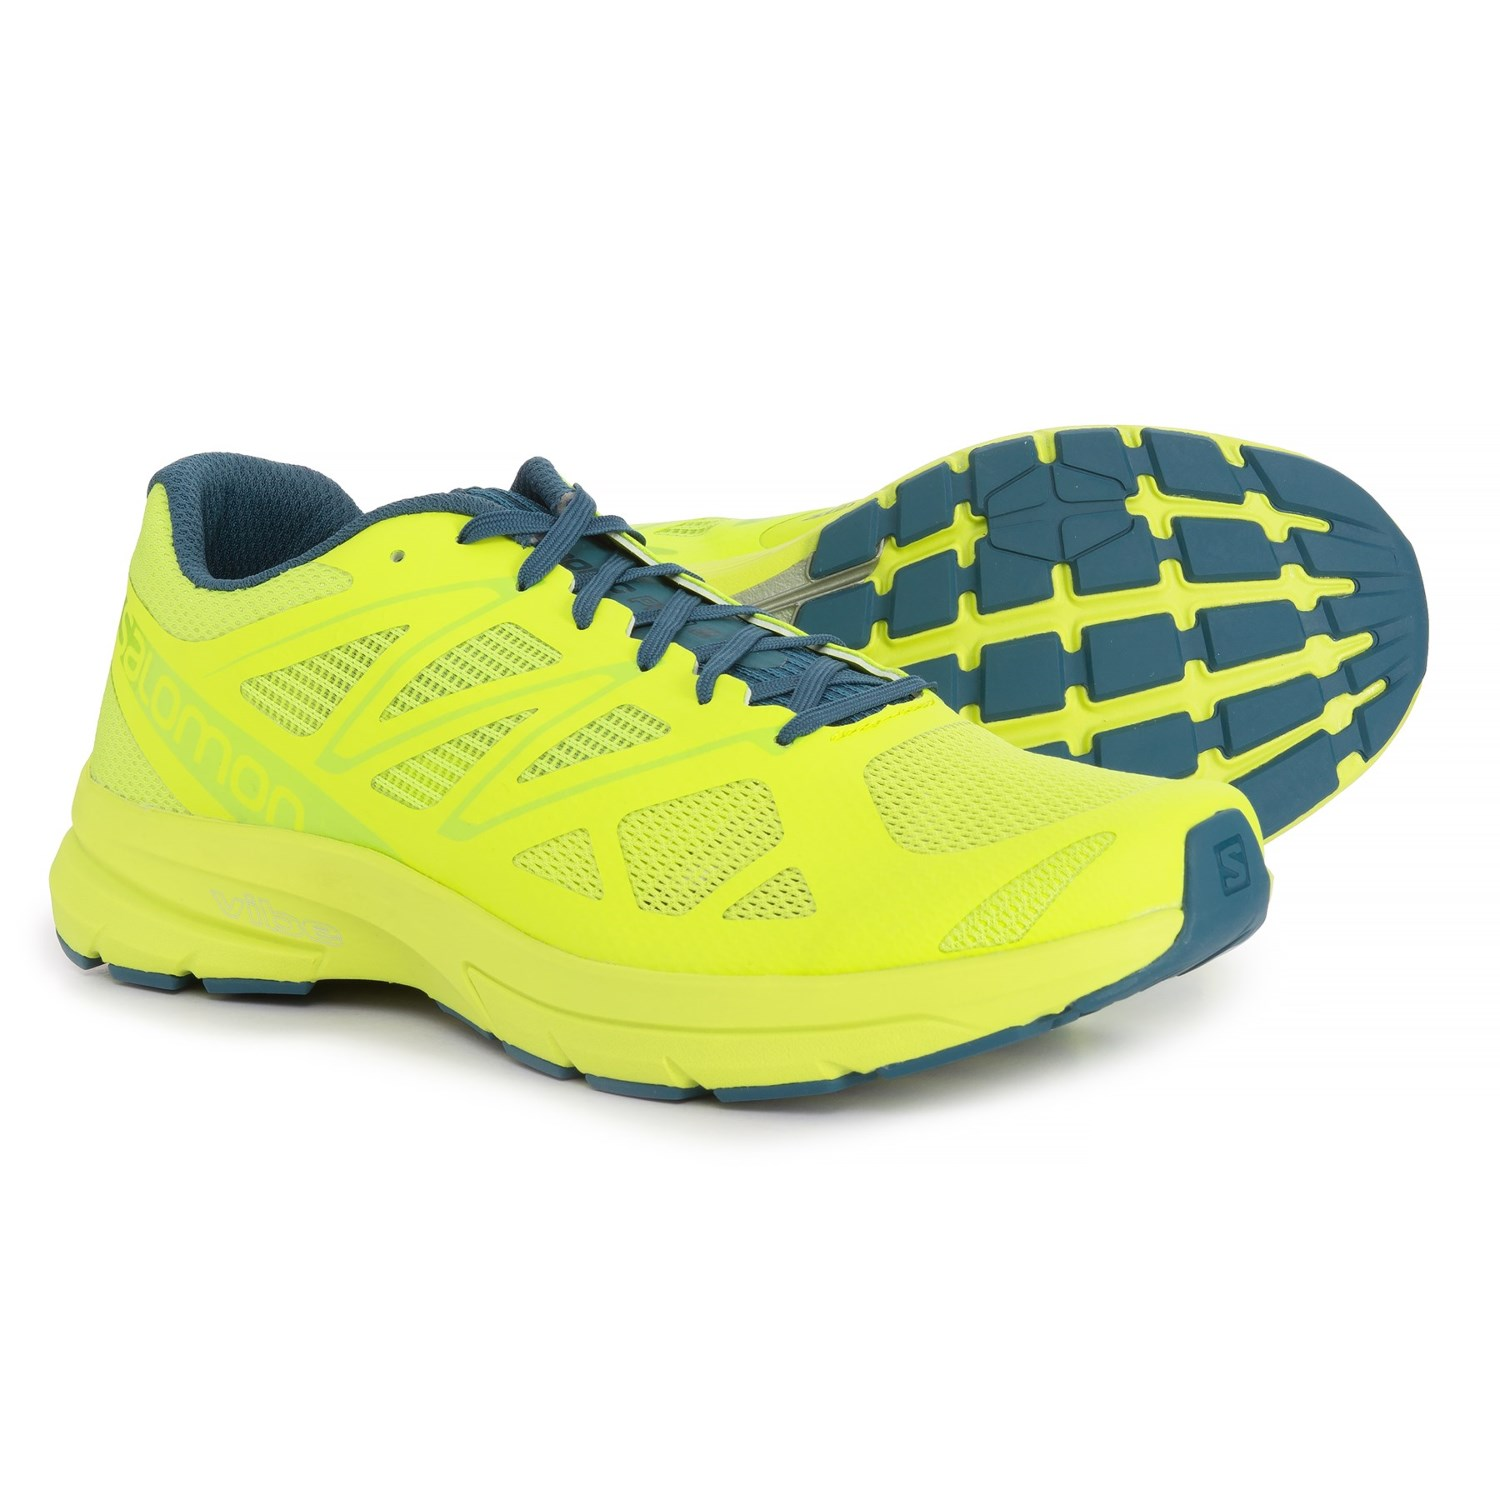 adaa6b48d0e4 Salomon Sonic Pro 2 Running Shoes (For Men) in Lime Punch Mallard Blue